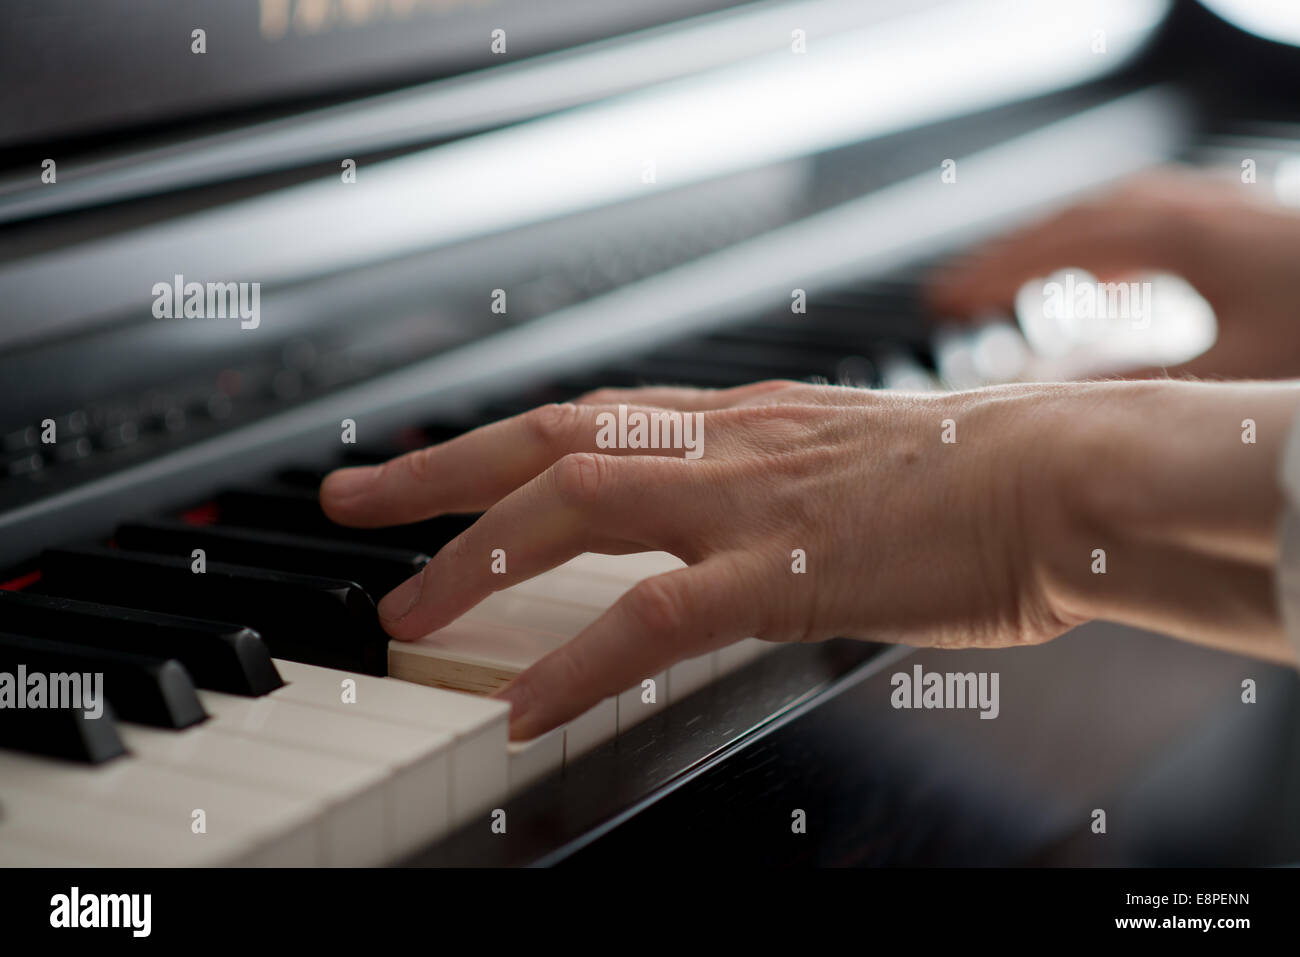 Detail of finger positioning - Playing and learning Piano - Stock Image